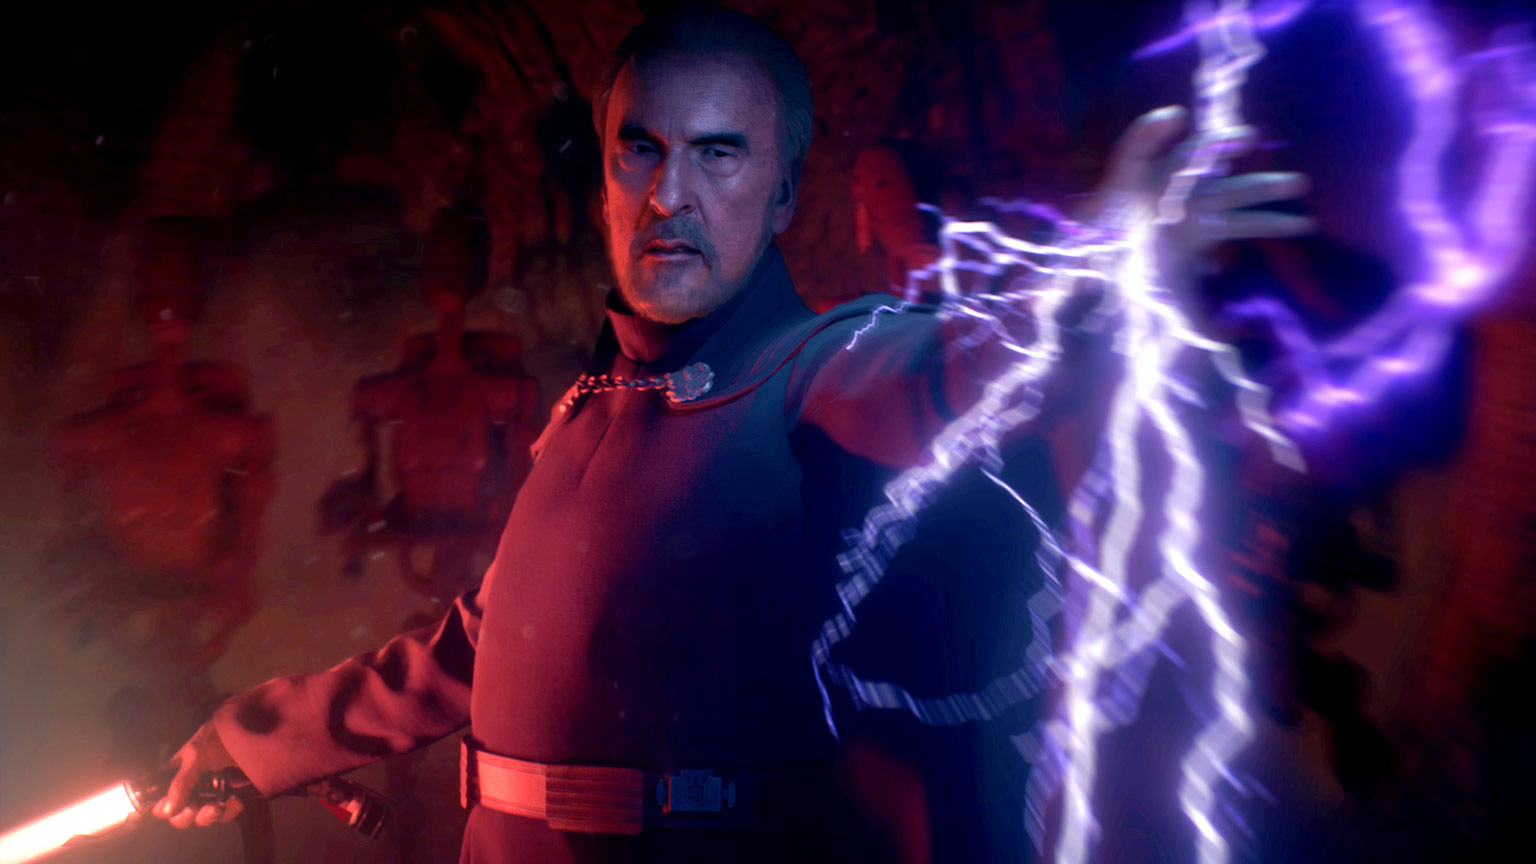 Count Dooku in Star Wars Battlefront II.